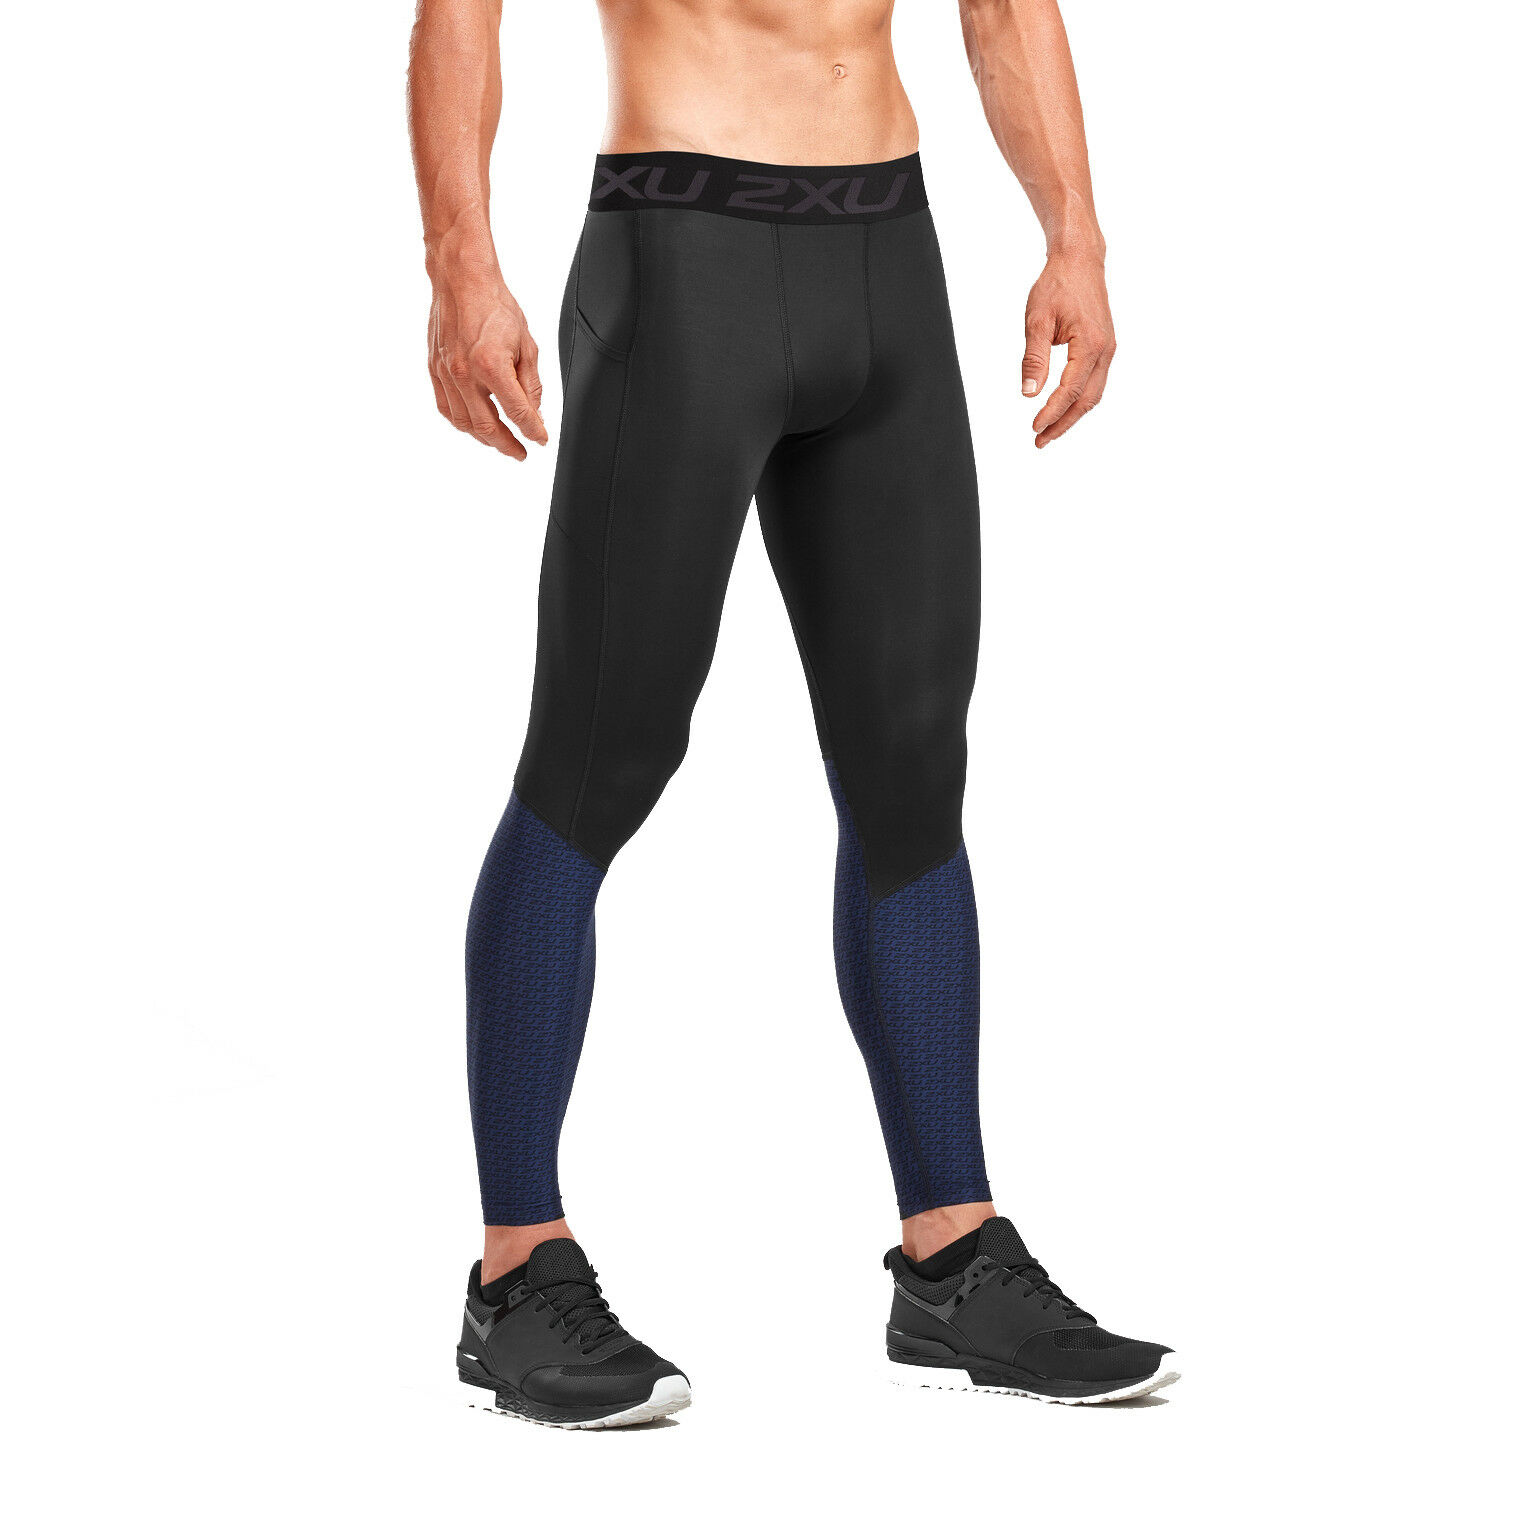 2XU Men's Accelerate Compression Tight with Storage -  2019  to provide you with a pleasant online shopping